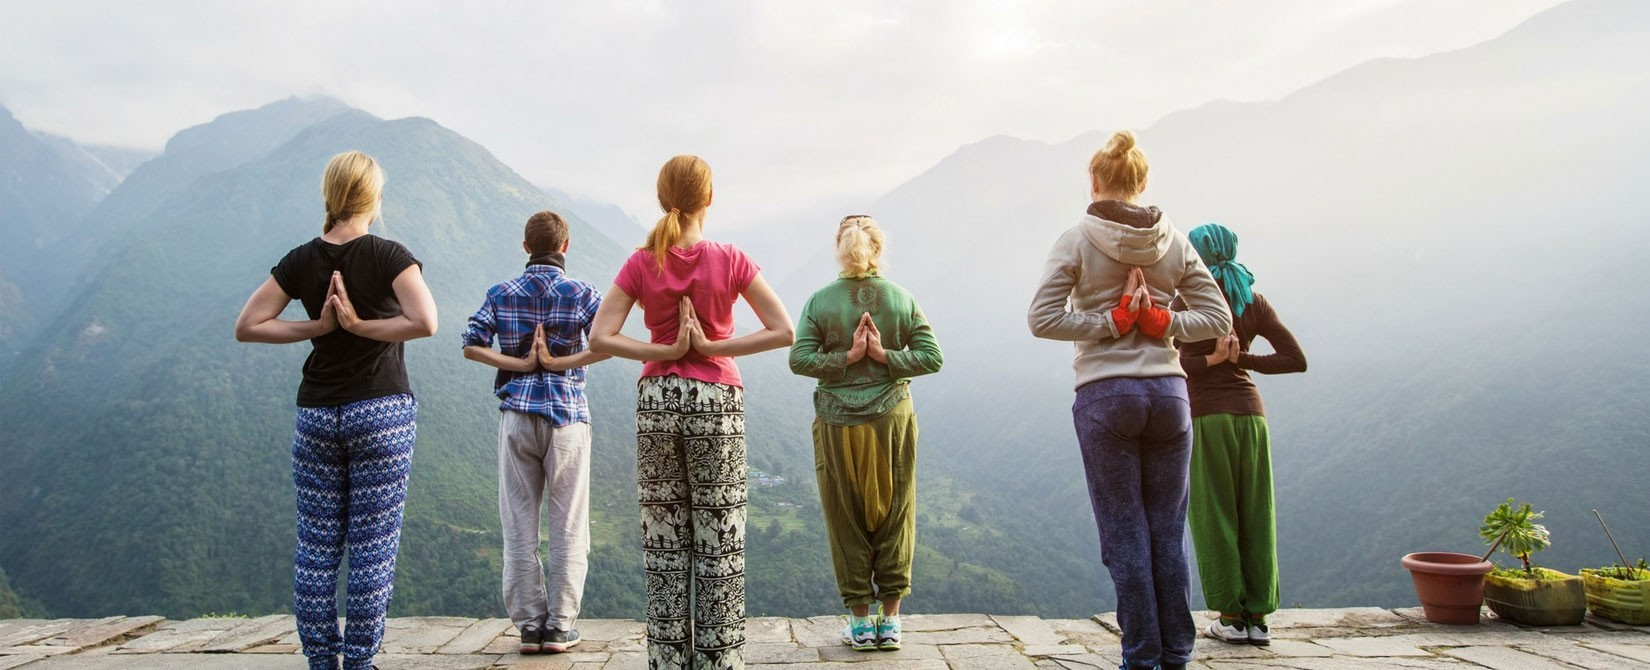 Yoga Trekking in the Himalayas Of Nepal